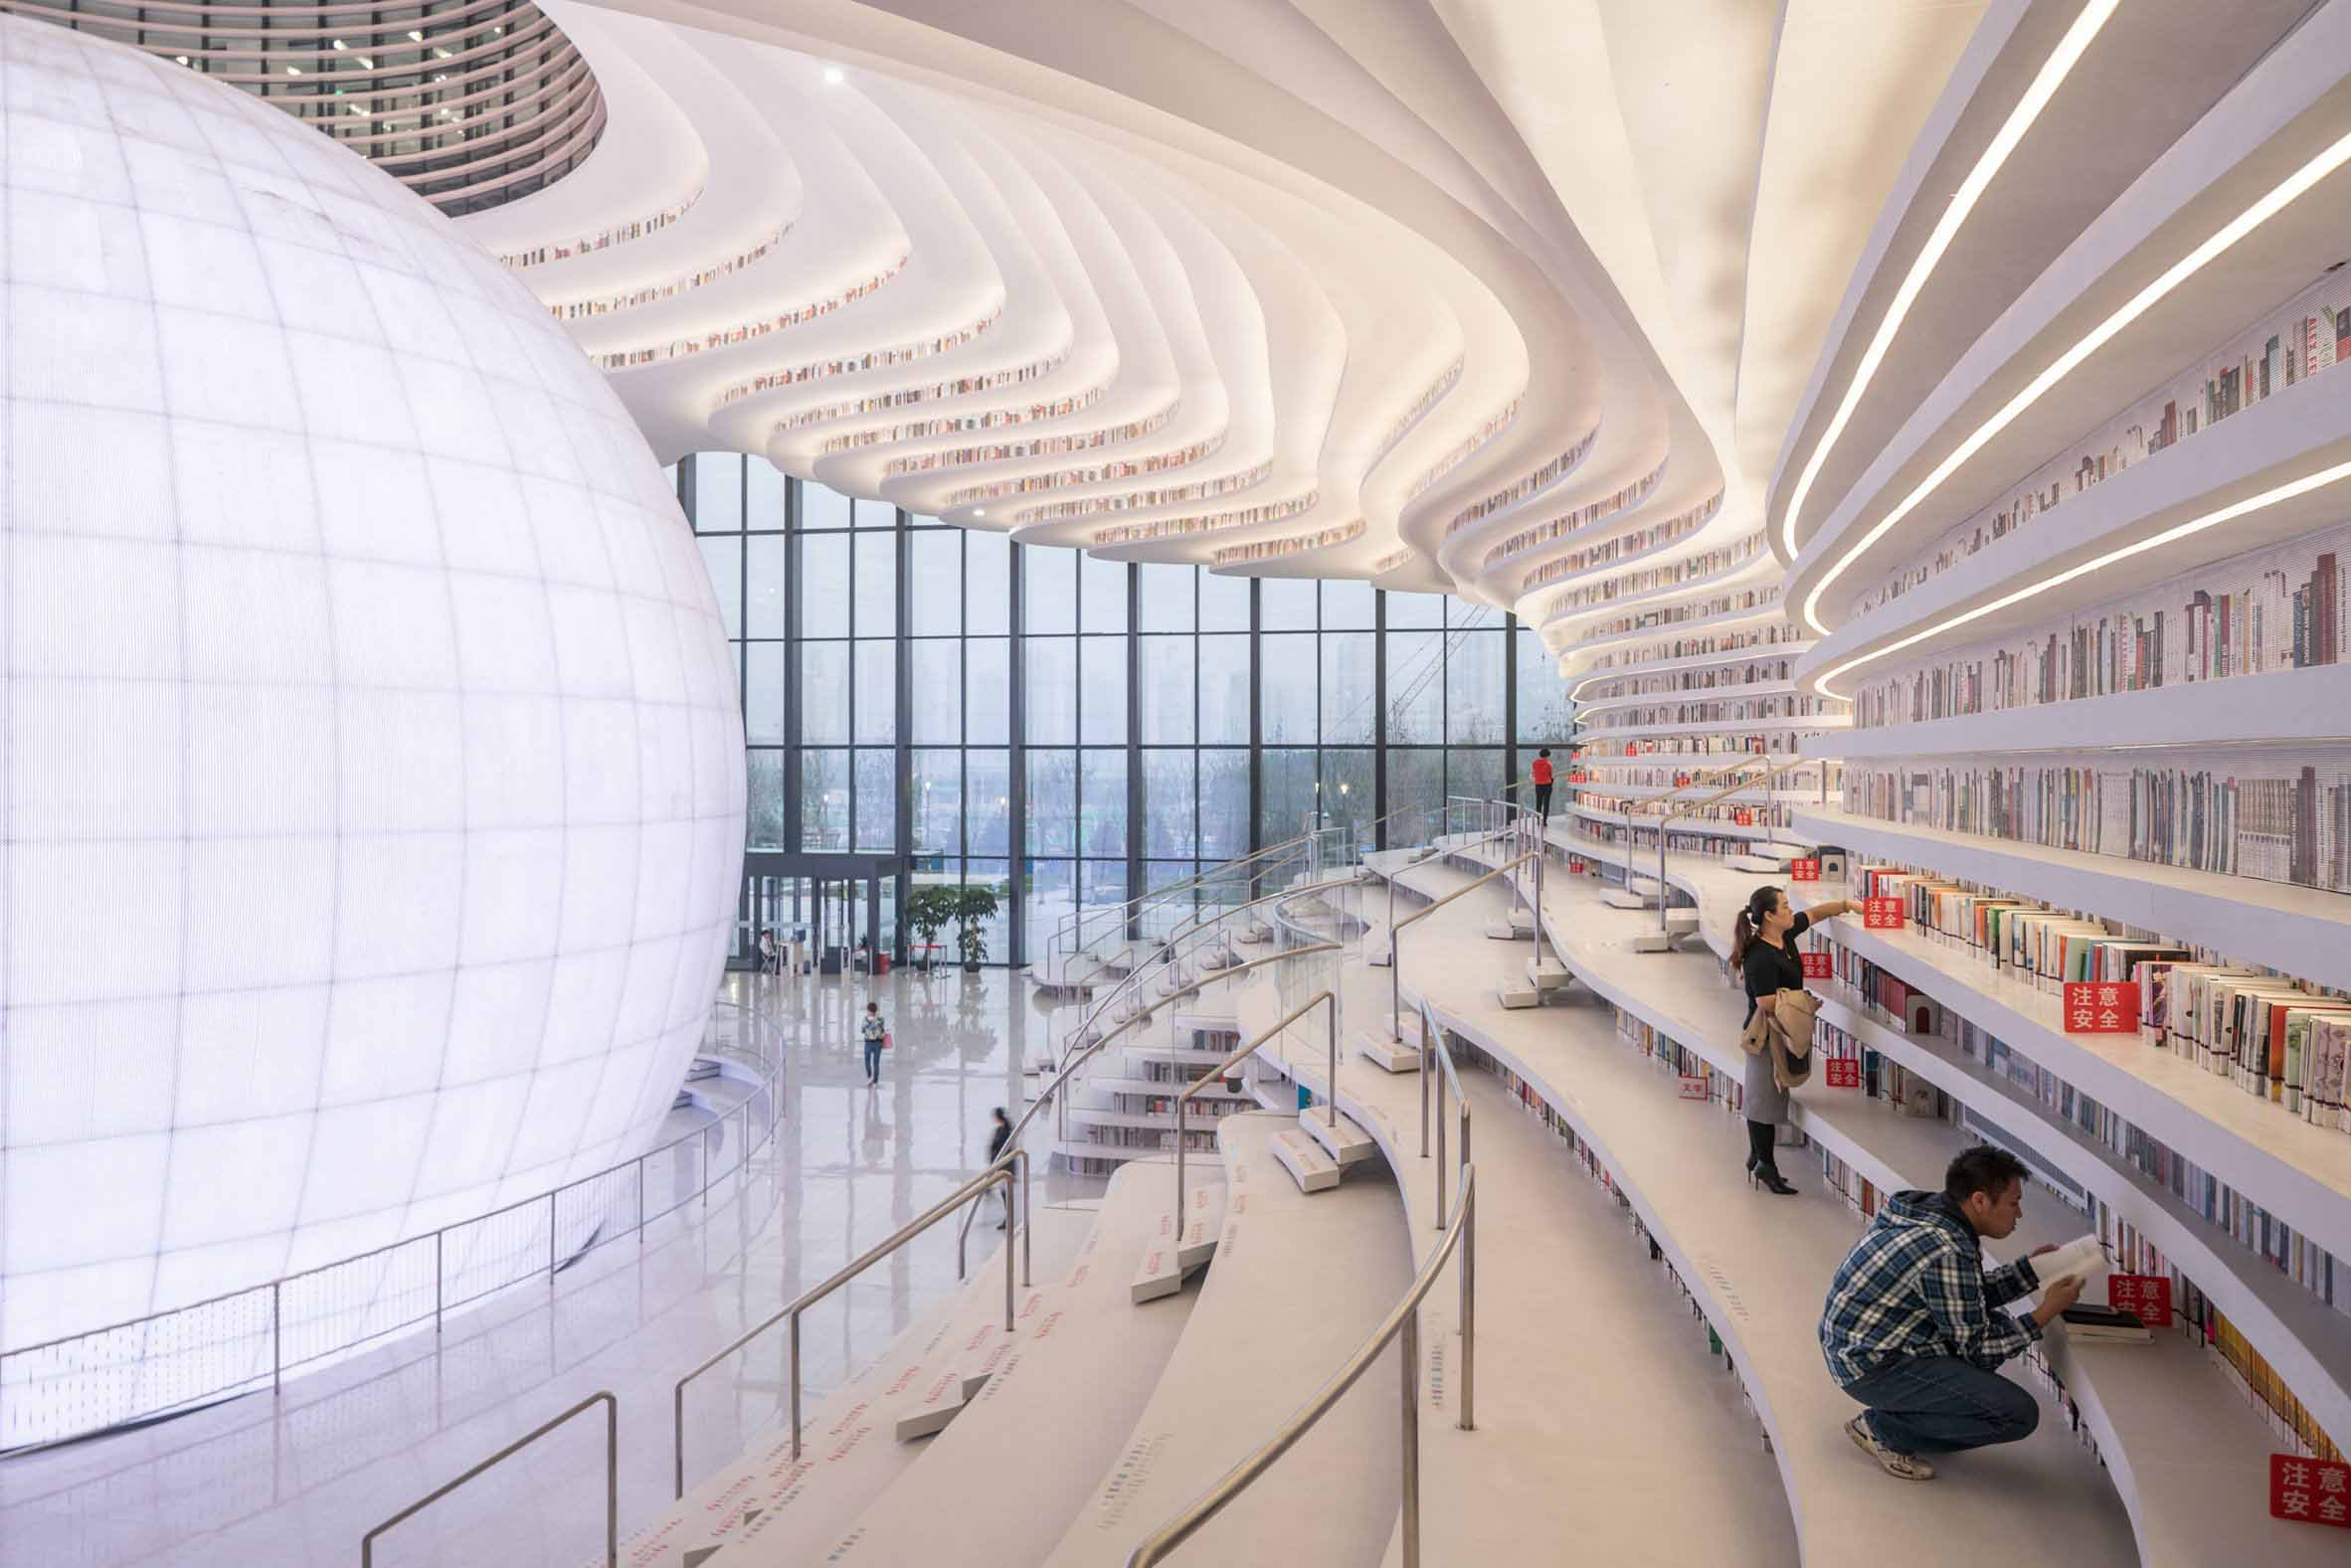 tianjin-binhai-library-mvrdv-architecture-public-and-leisure-china_dezeen_2364_col_13